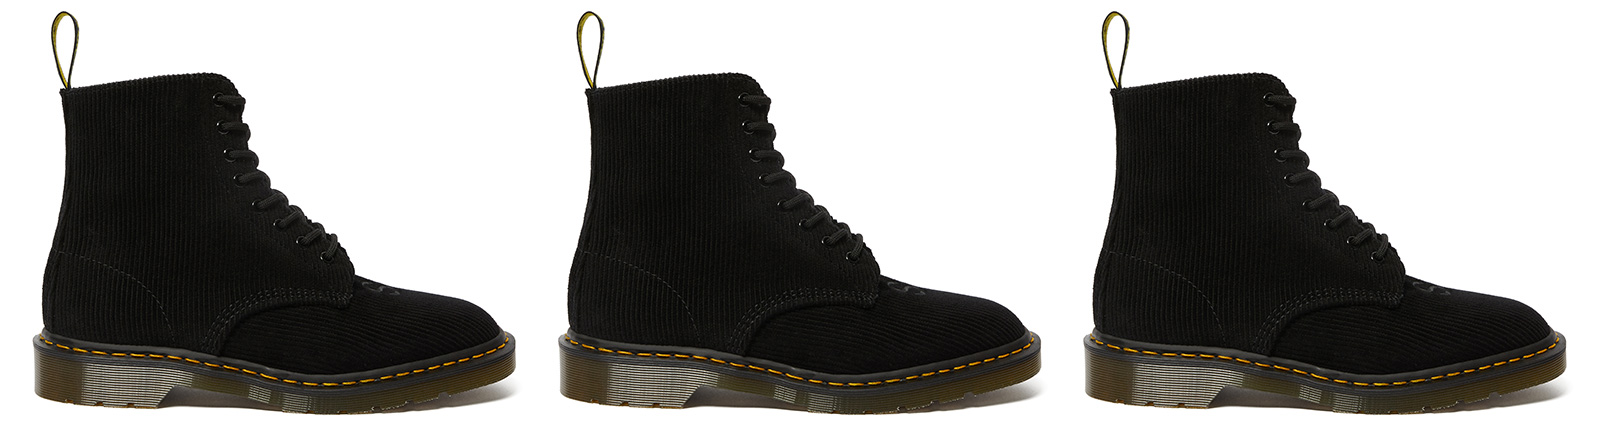 Undercover x Dr Martens